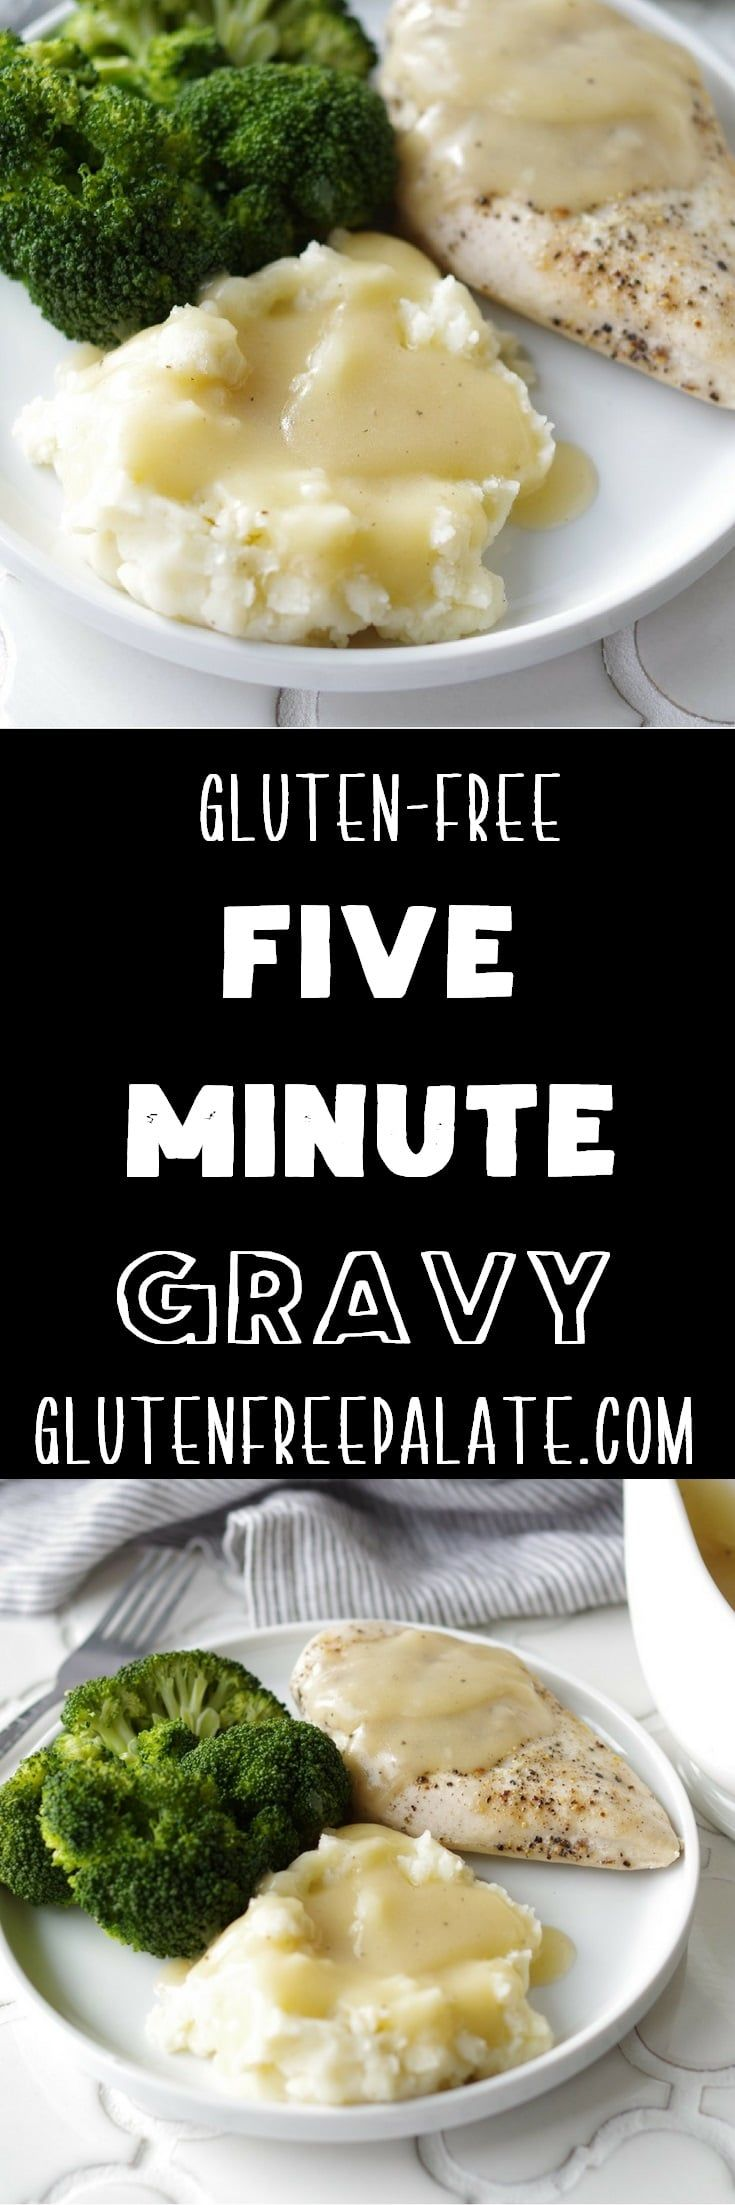 Good Gravy!!! This recipe for Five Minute Gluten-Free Gravy is a GAME-CHANGER. Everybody needs a good gluten-free gravy recipe, right?